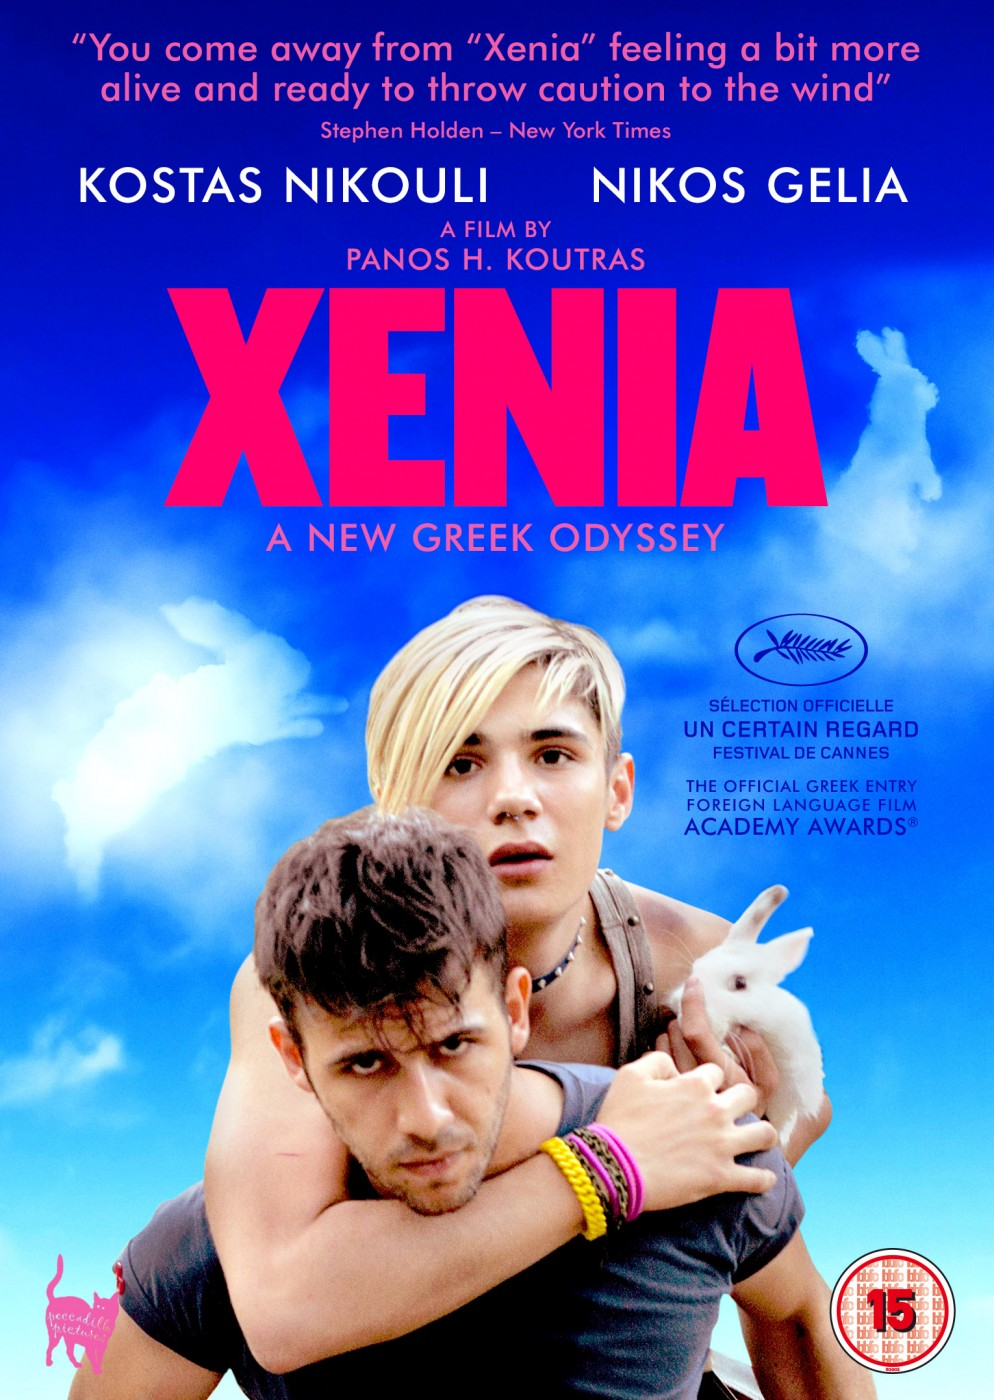 Xenia is a new Greek odyssey from director Panos H. Koutras.